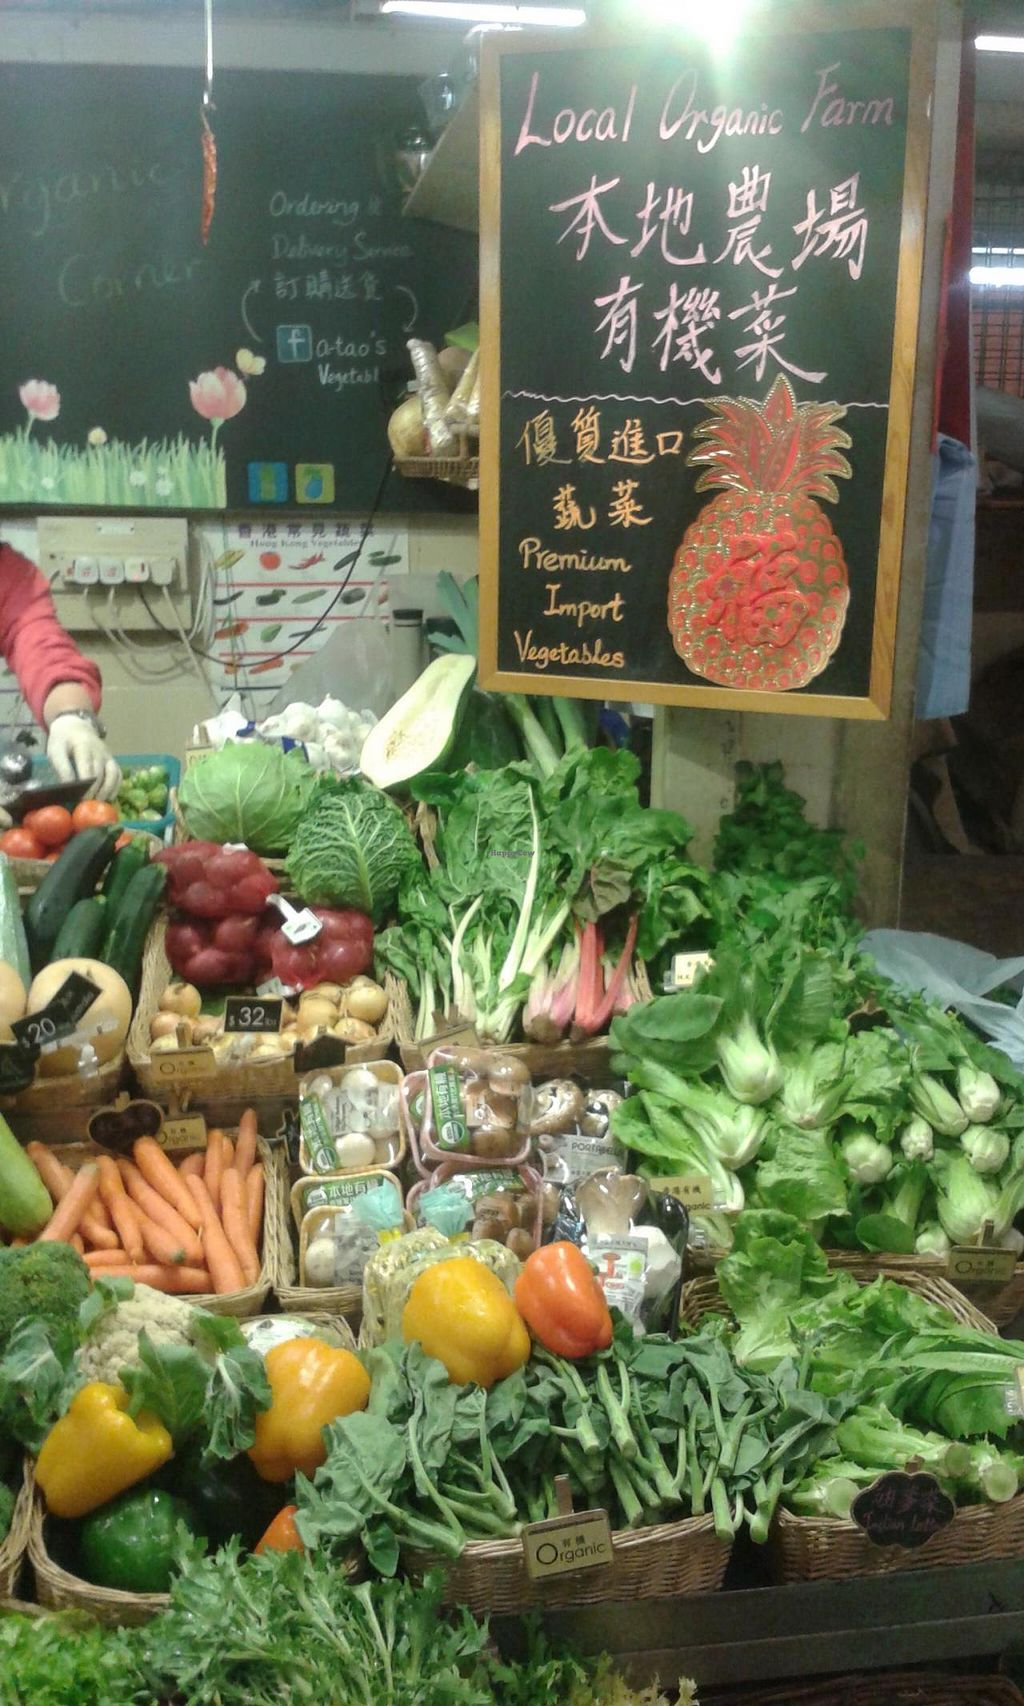 """Photo of A-Tao's Vegetables  by <a href=""""/members/profile/Stevie"""">Stevie</a> <br/>2 <br/> March 8, 2015  - <a href='/contact/abuse/image/45975/95189'>Report</a>"""